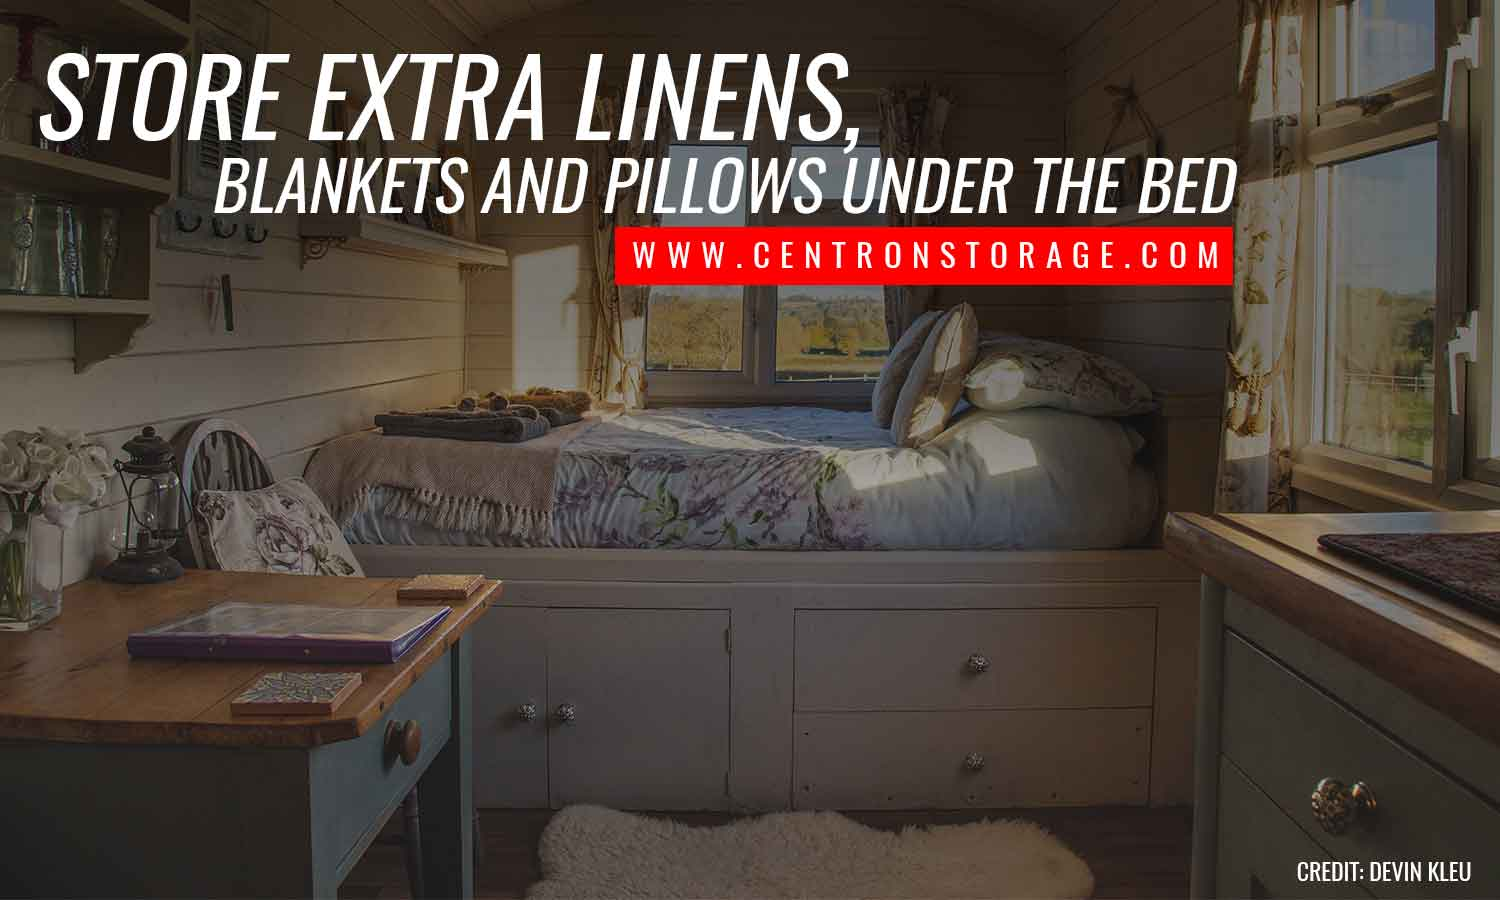 Store extra linens, blankets and pillows under the bed